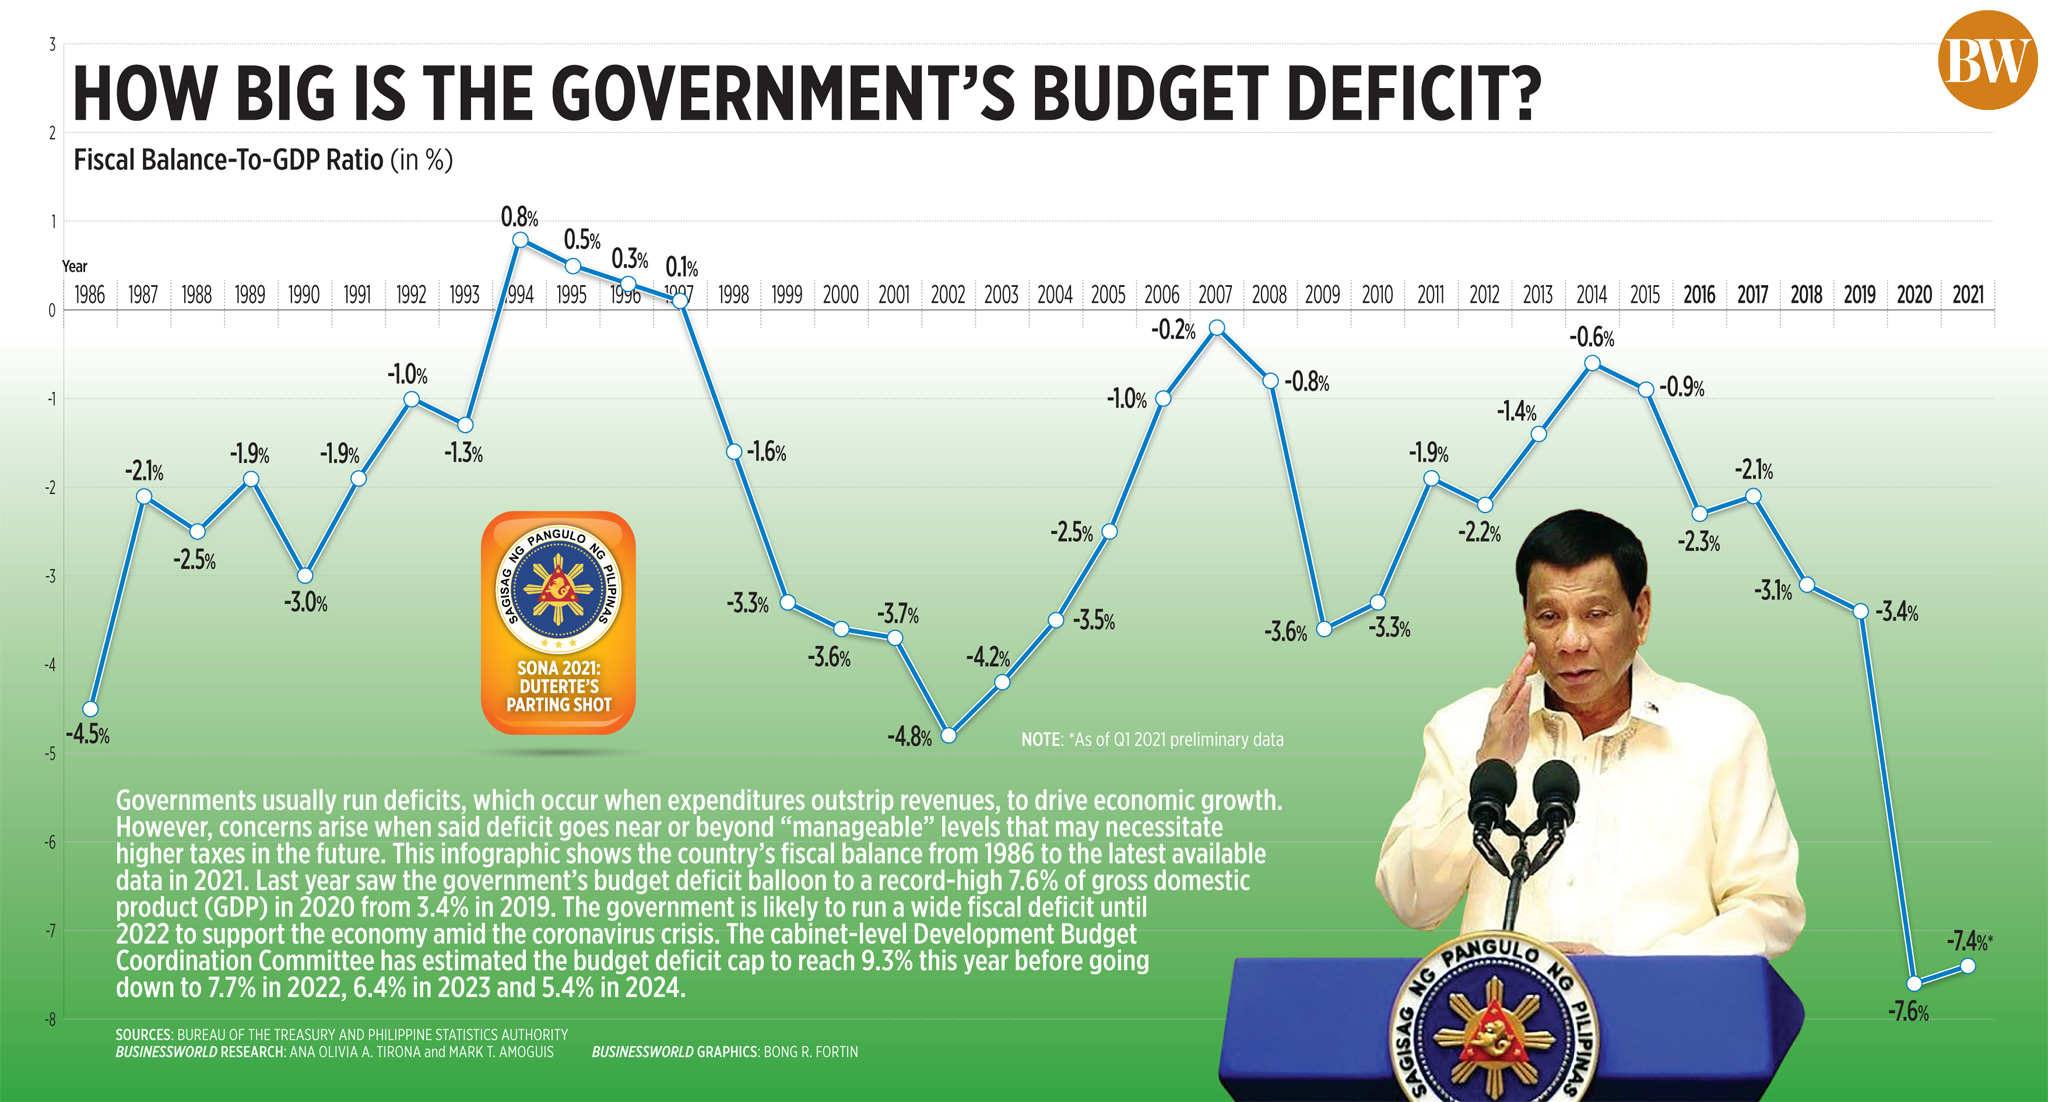 How big is the government's budget deficit